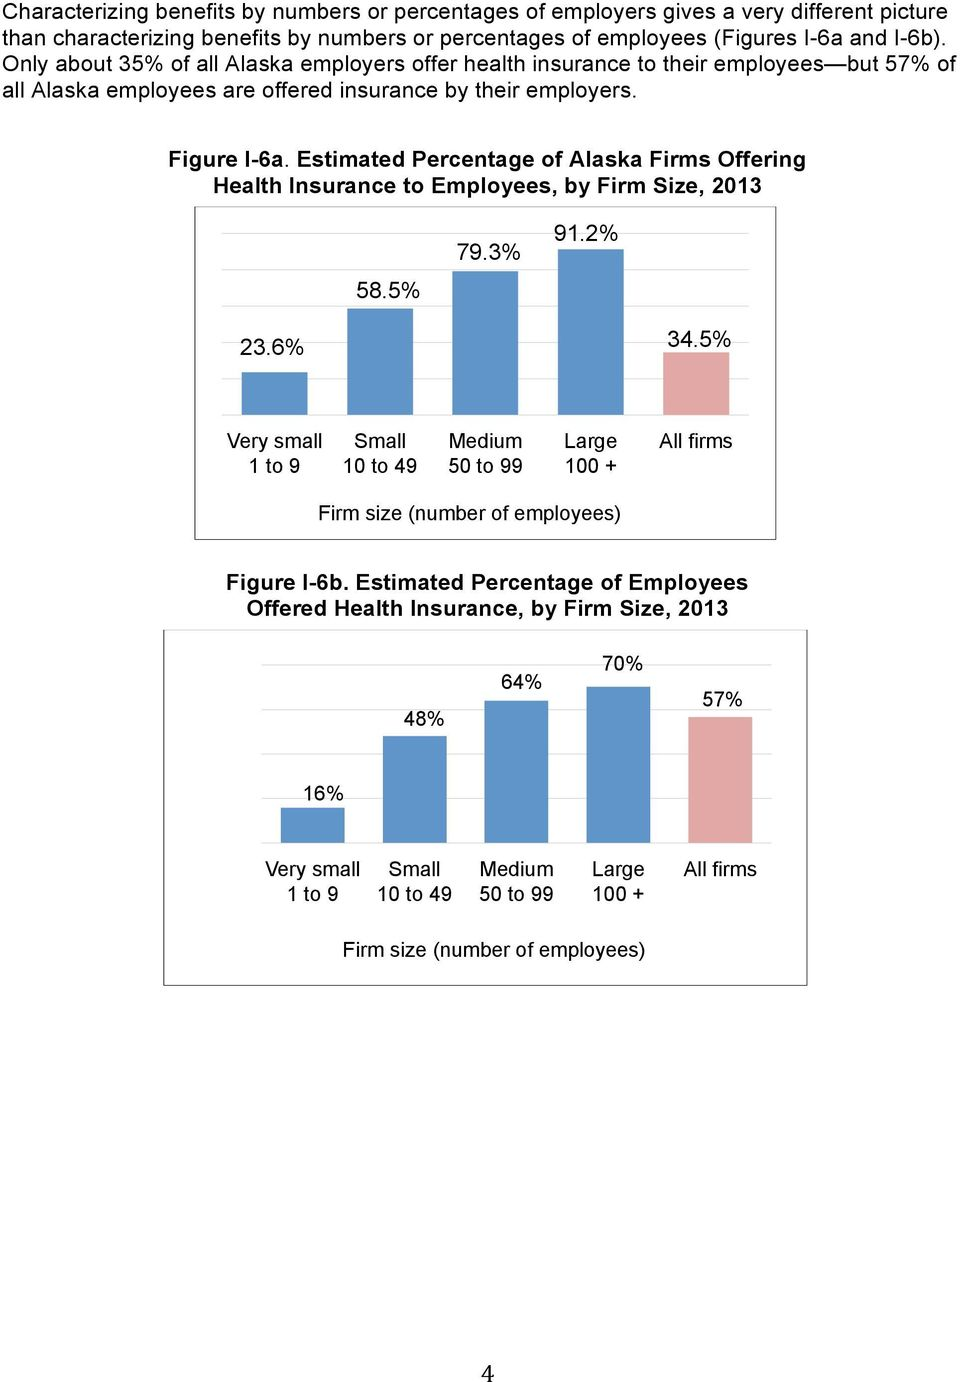 Estimated Percentage of Alaska Firms Offering Health Insurance to Employees, by Firm Size, 2013 58.5% 79.3% 91.2% 23.6% 34.